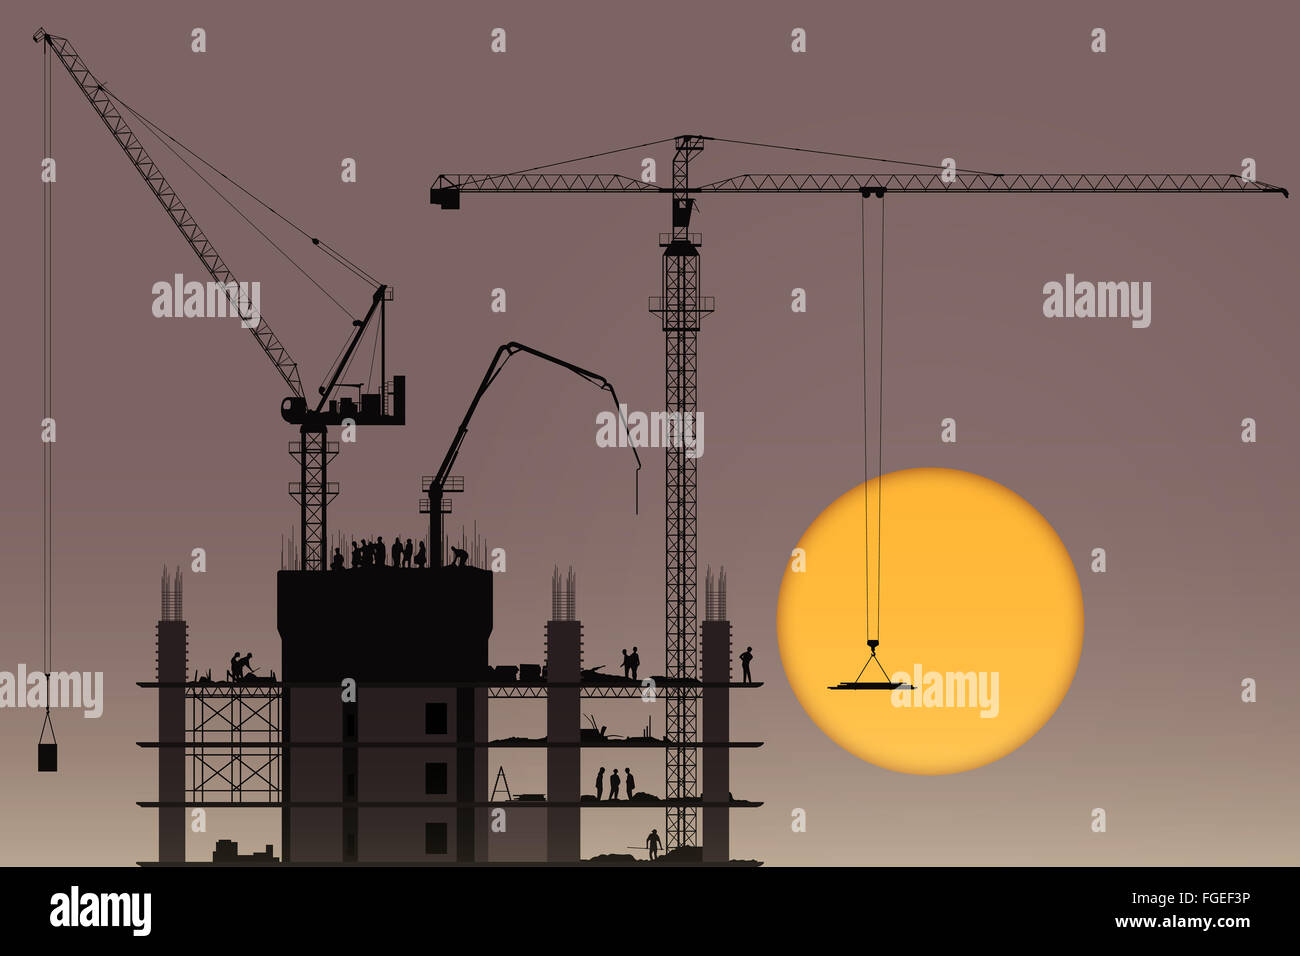 A Construction Site with Tower Cranes and Sunset, Sunrise - Stock Image